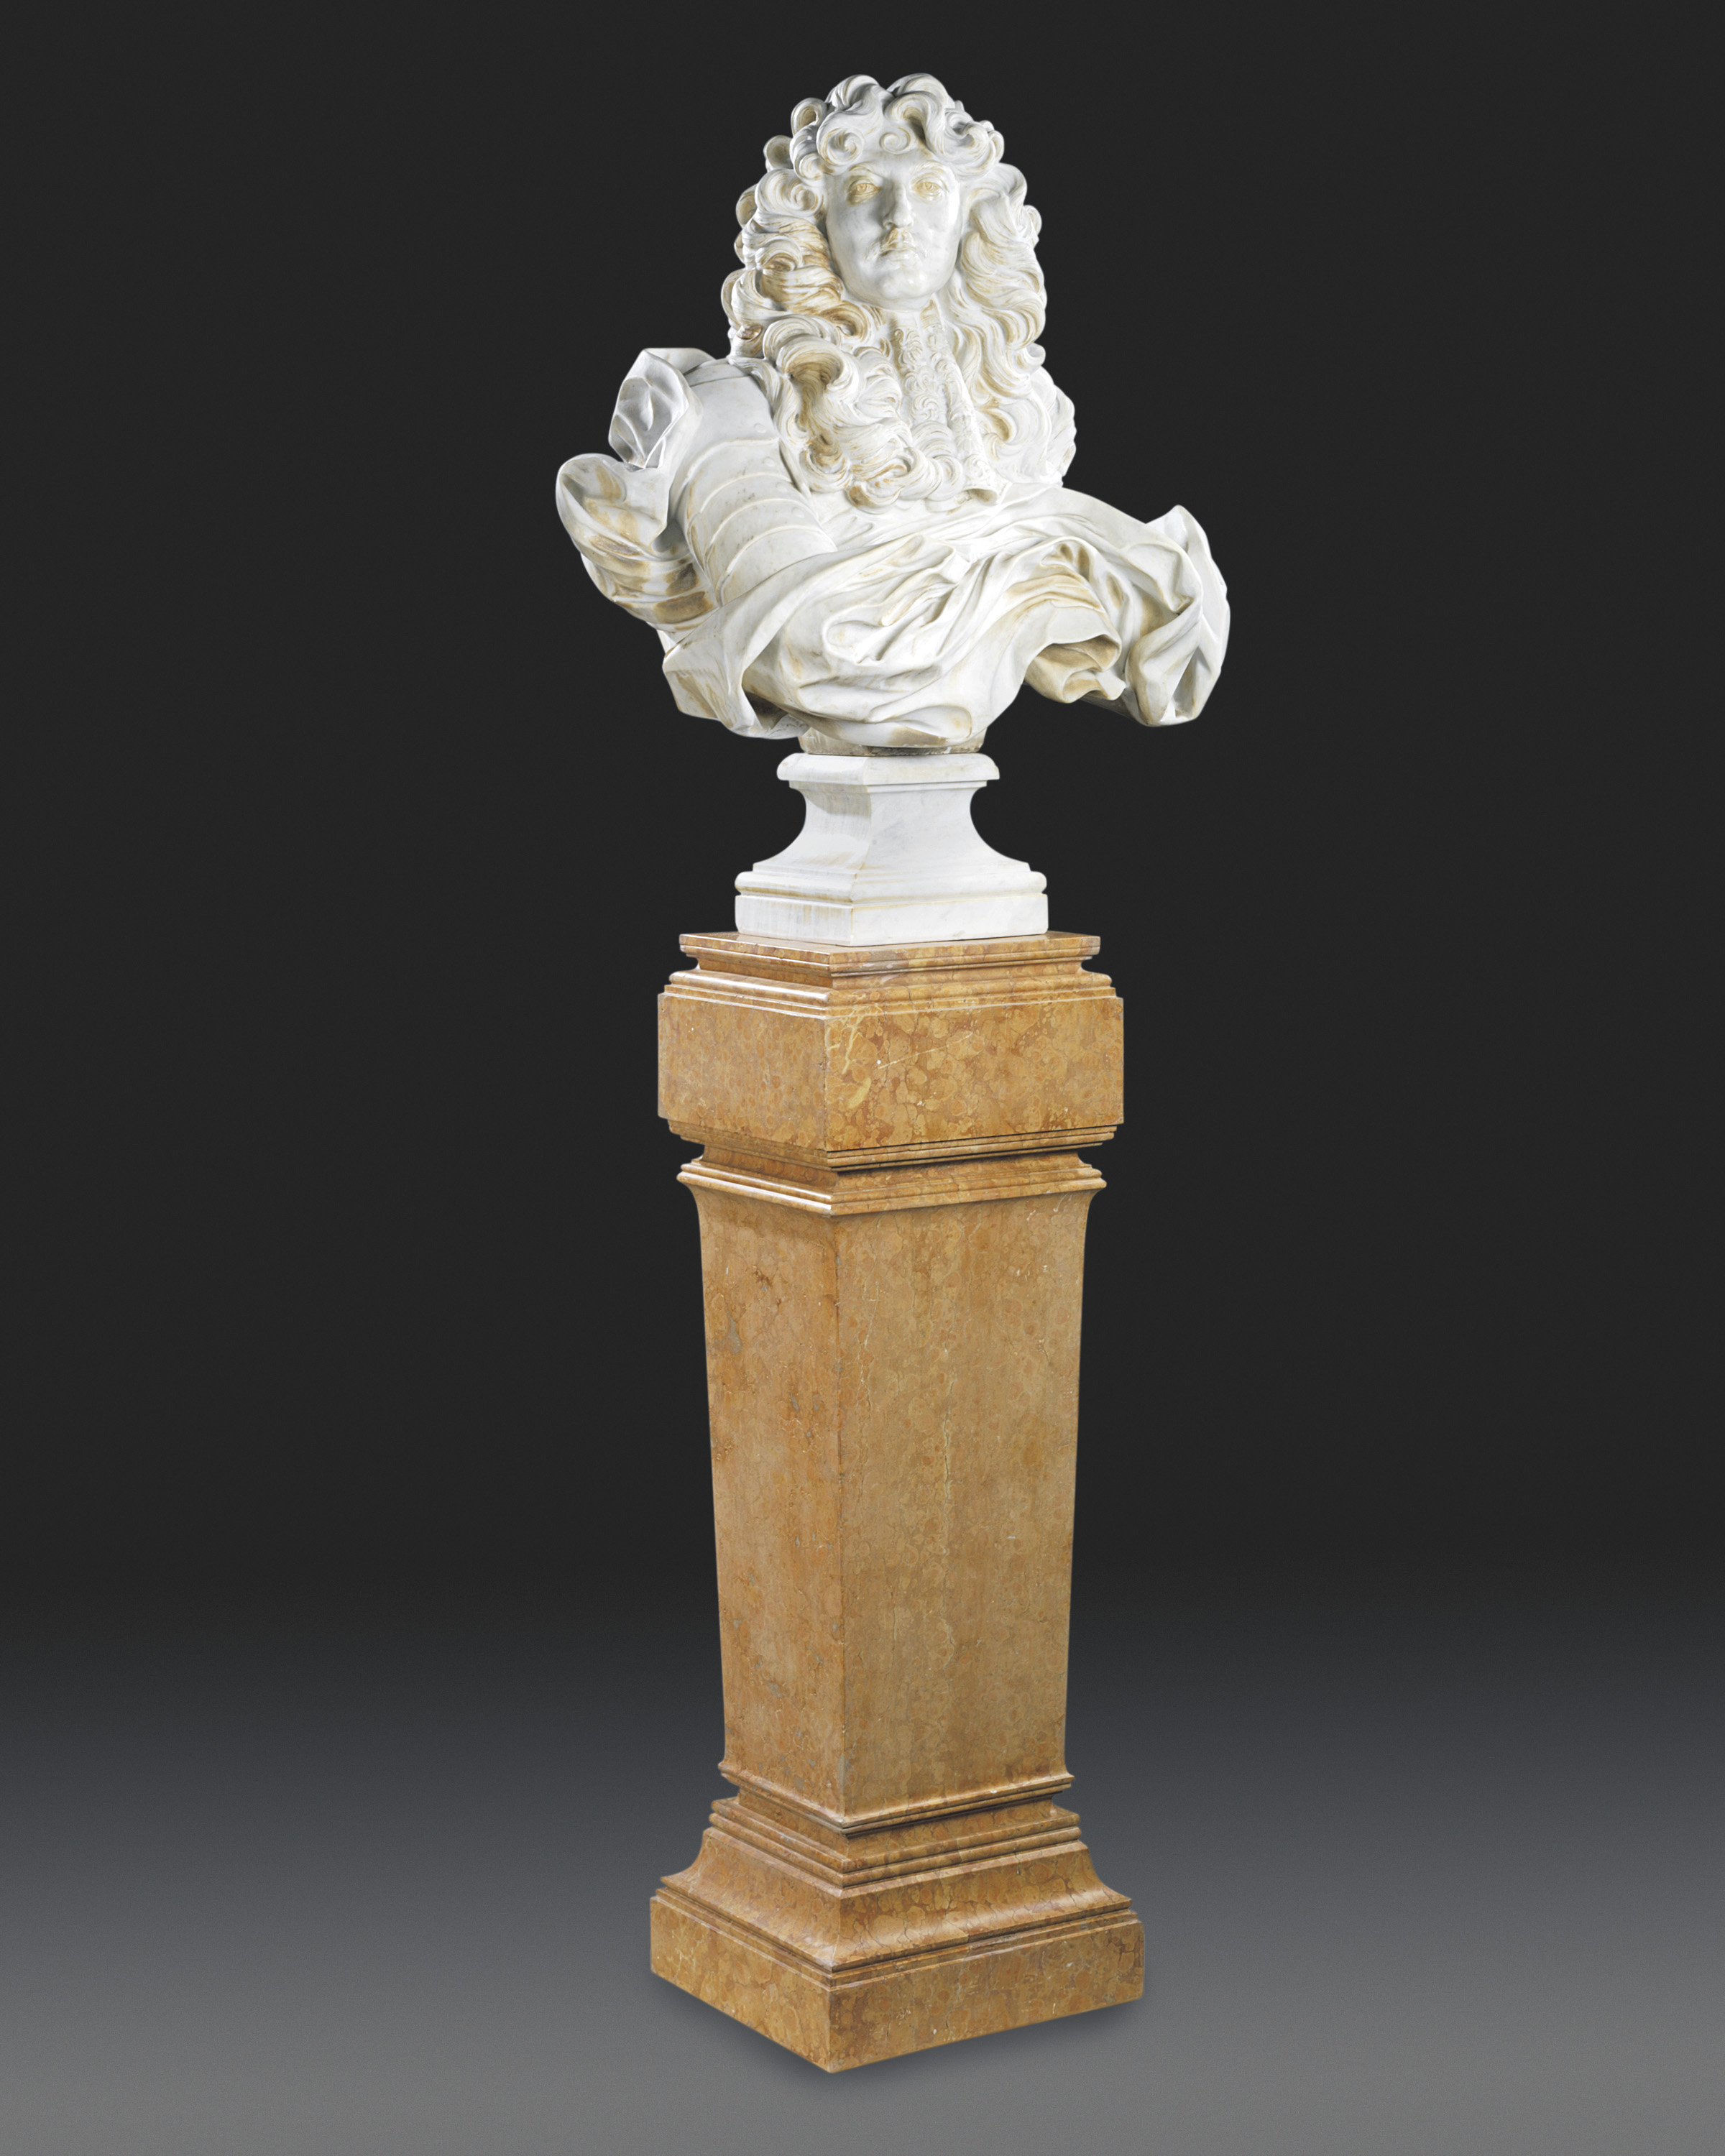 A FRENCH/ITALIAN OVER-LIFE-SIZE MARBLE BUST OF LOUIS XIV